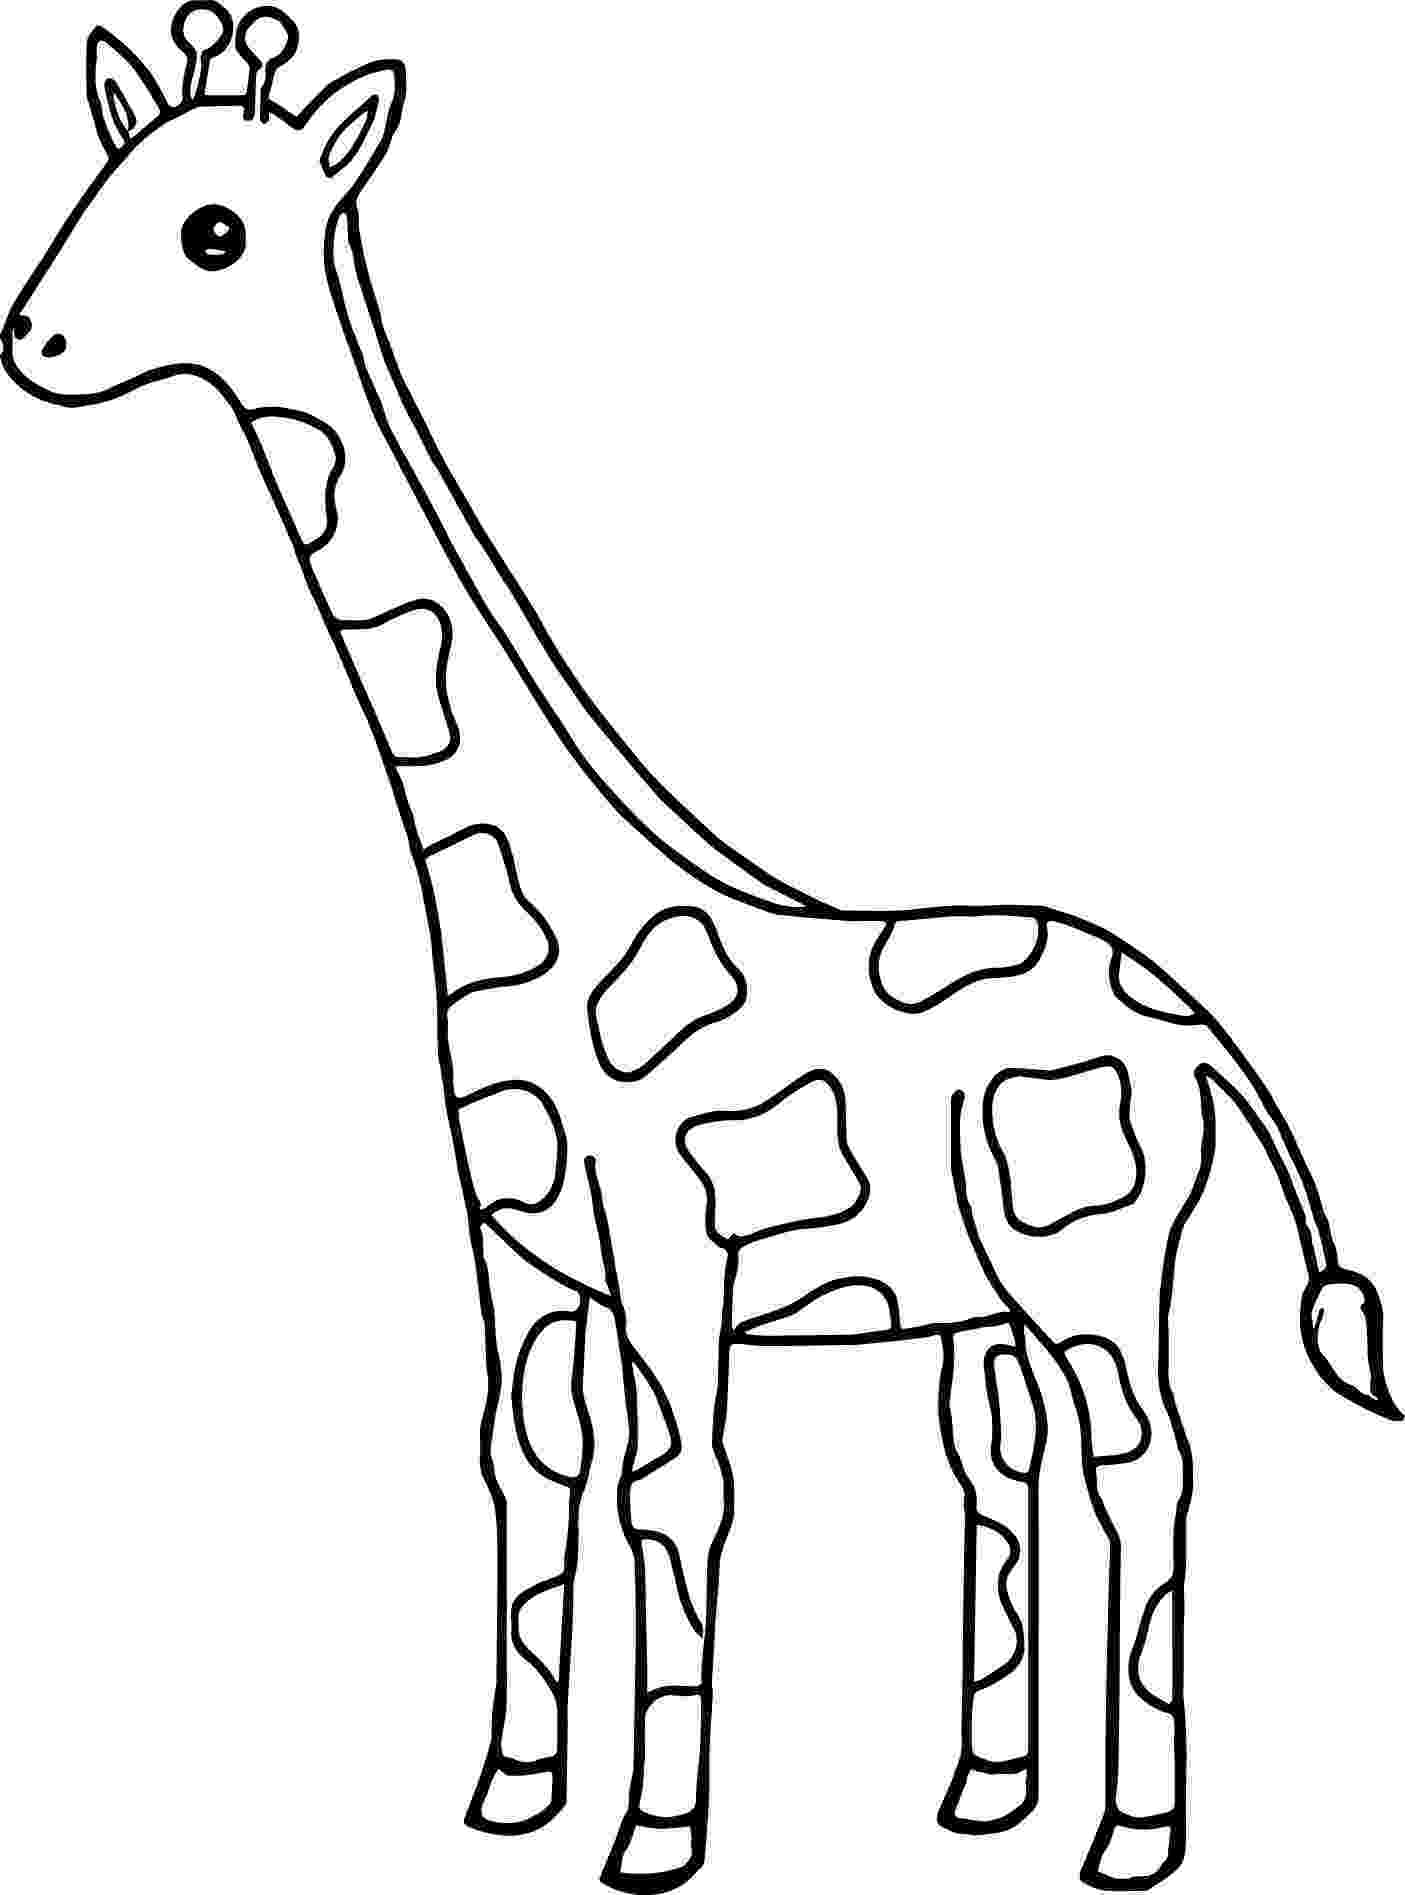 colouring pages for giraffe nice tall giraffe coloring page wecoloringpage giraffe giraffe pages colouring for